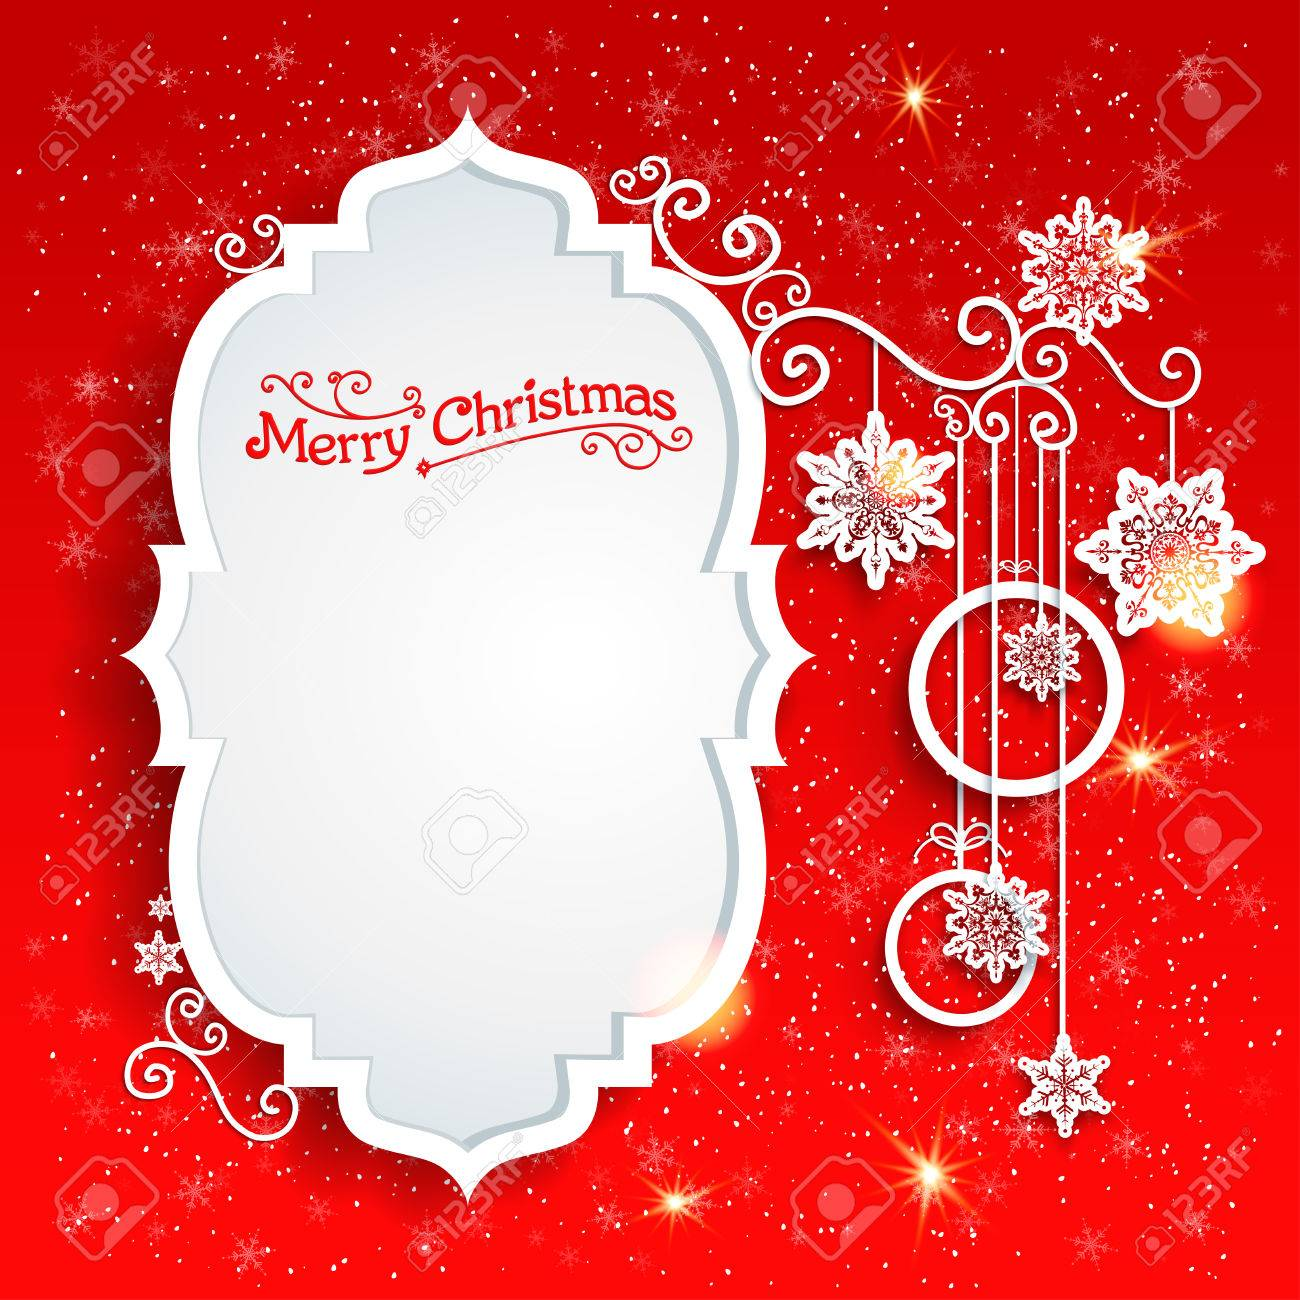 Christmas design on redbackground with place for text - 33459891